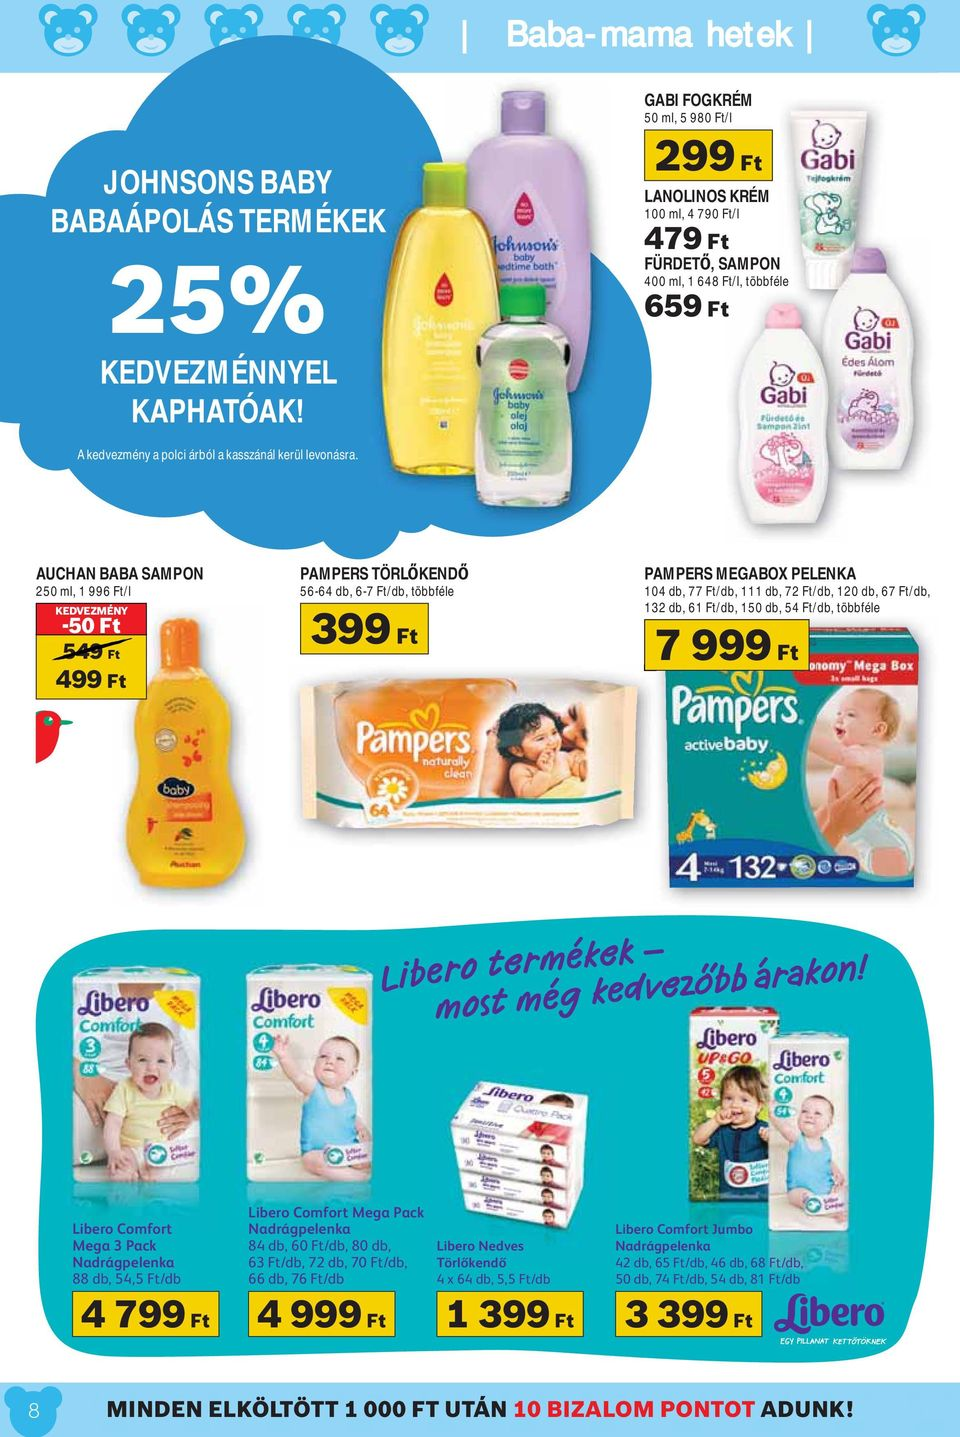 AUCHAN BABA SAMPON 250 ml, 1 996 Ft/l KEDVEZMÉNY -50 Ft 549 Ft 499 Ft PAMPERS TÖRL KEND 56-64 db, 6-7 Ft/db, többféle 399 Ft PAMPERS MEGABOX PELENKA 104 db, 77 Ft/db, 111 db, 72 Ft/db, 120 db, 67